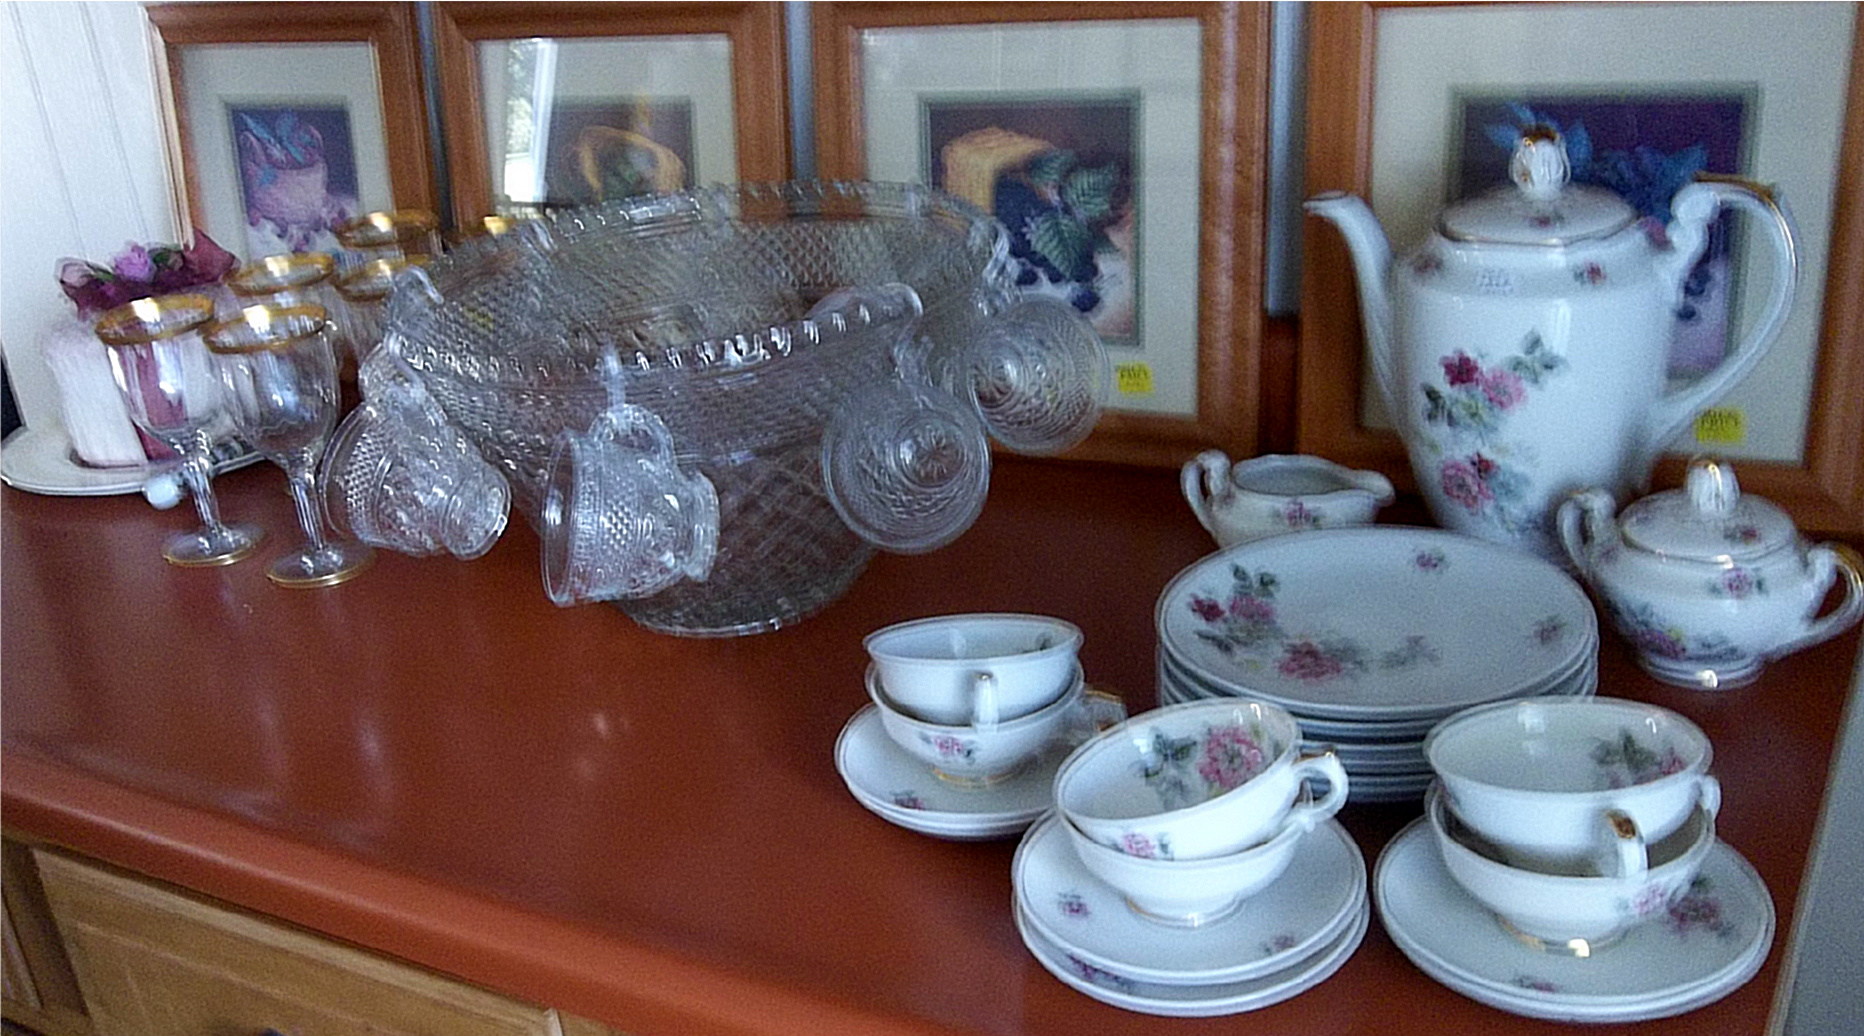 home decor for sale at New To You Shop Annex in Unity Maine